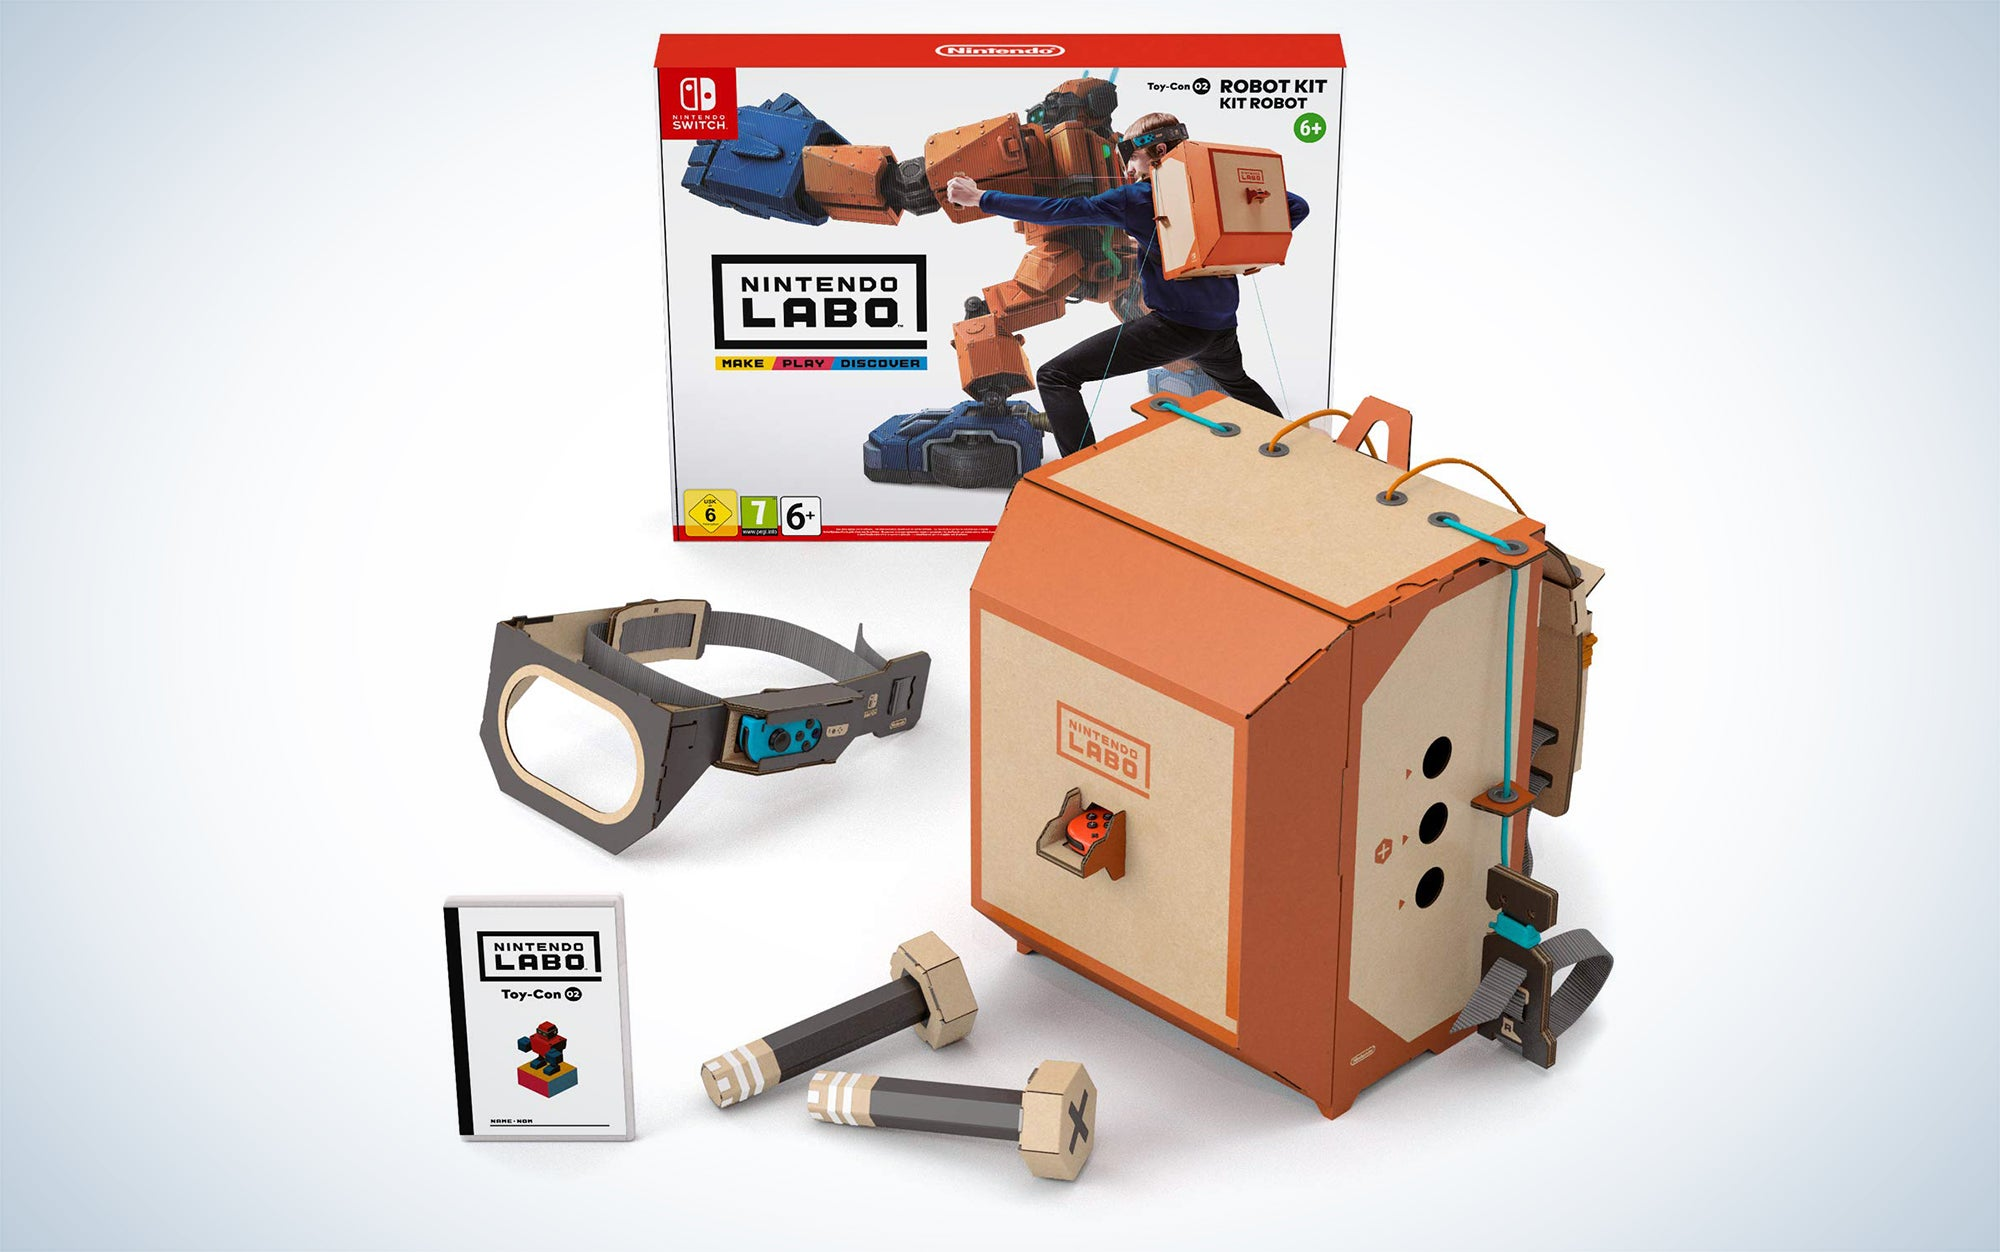 Nintendo Labo Kits are great video games for kids.